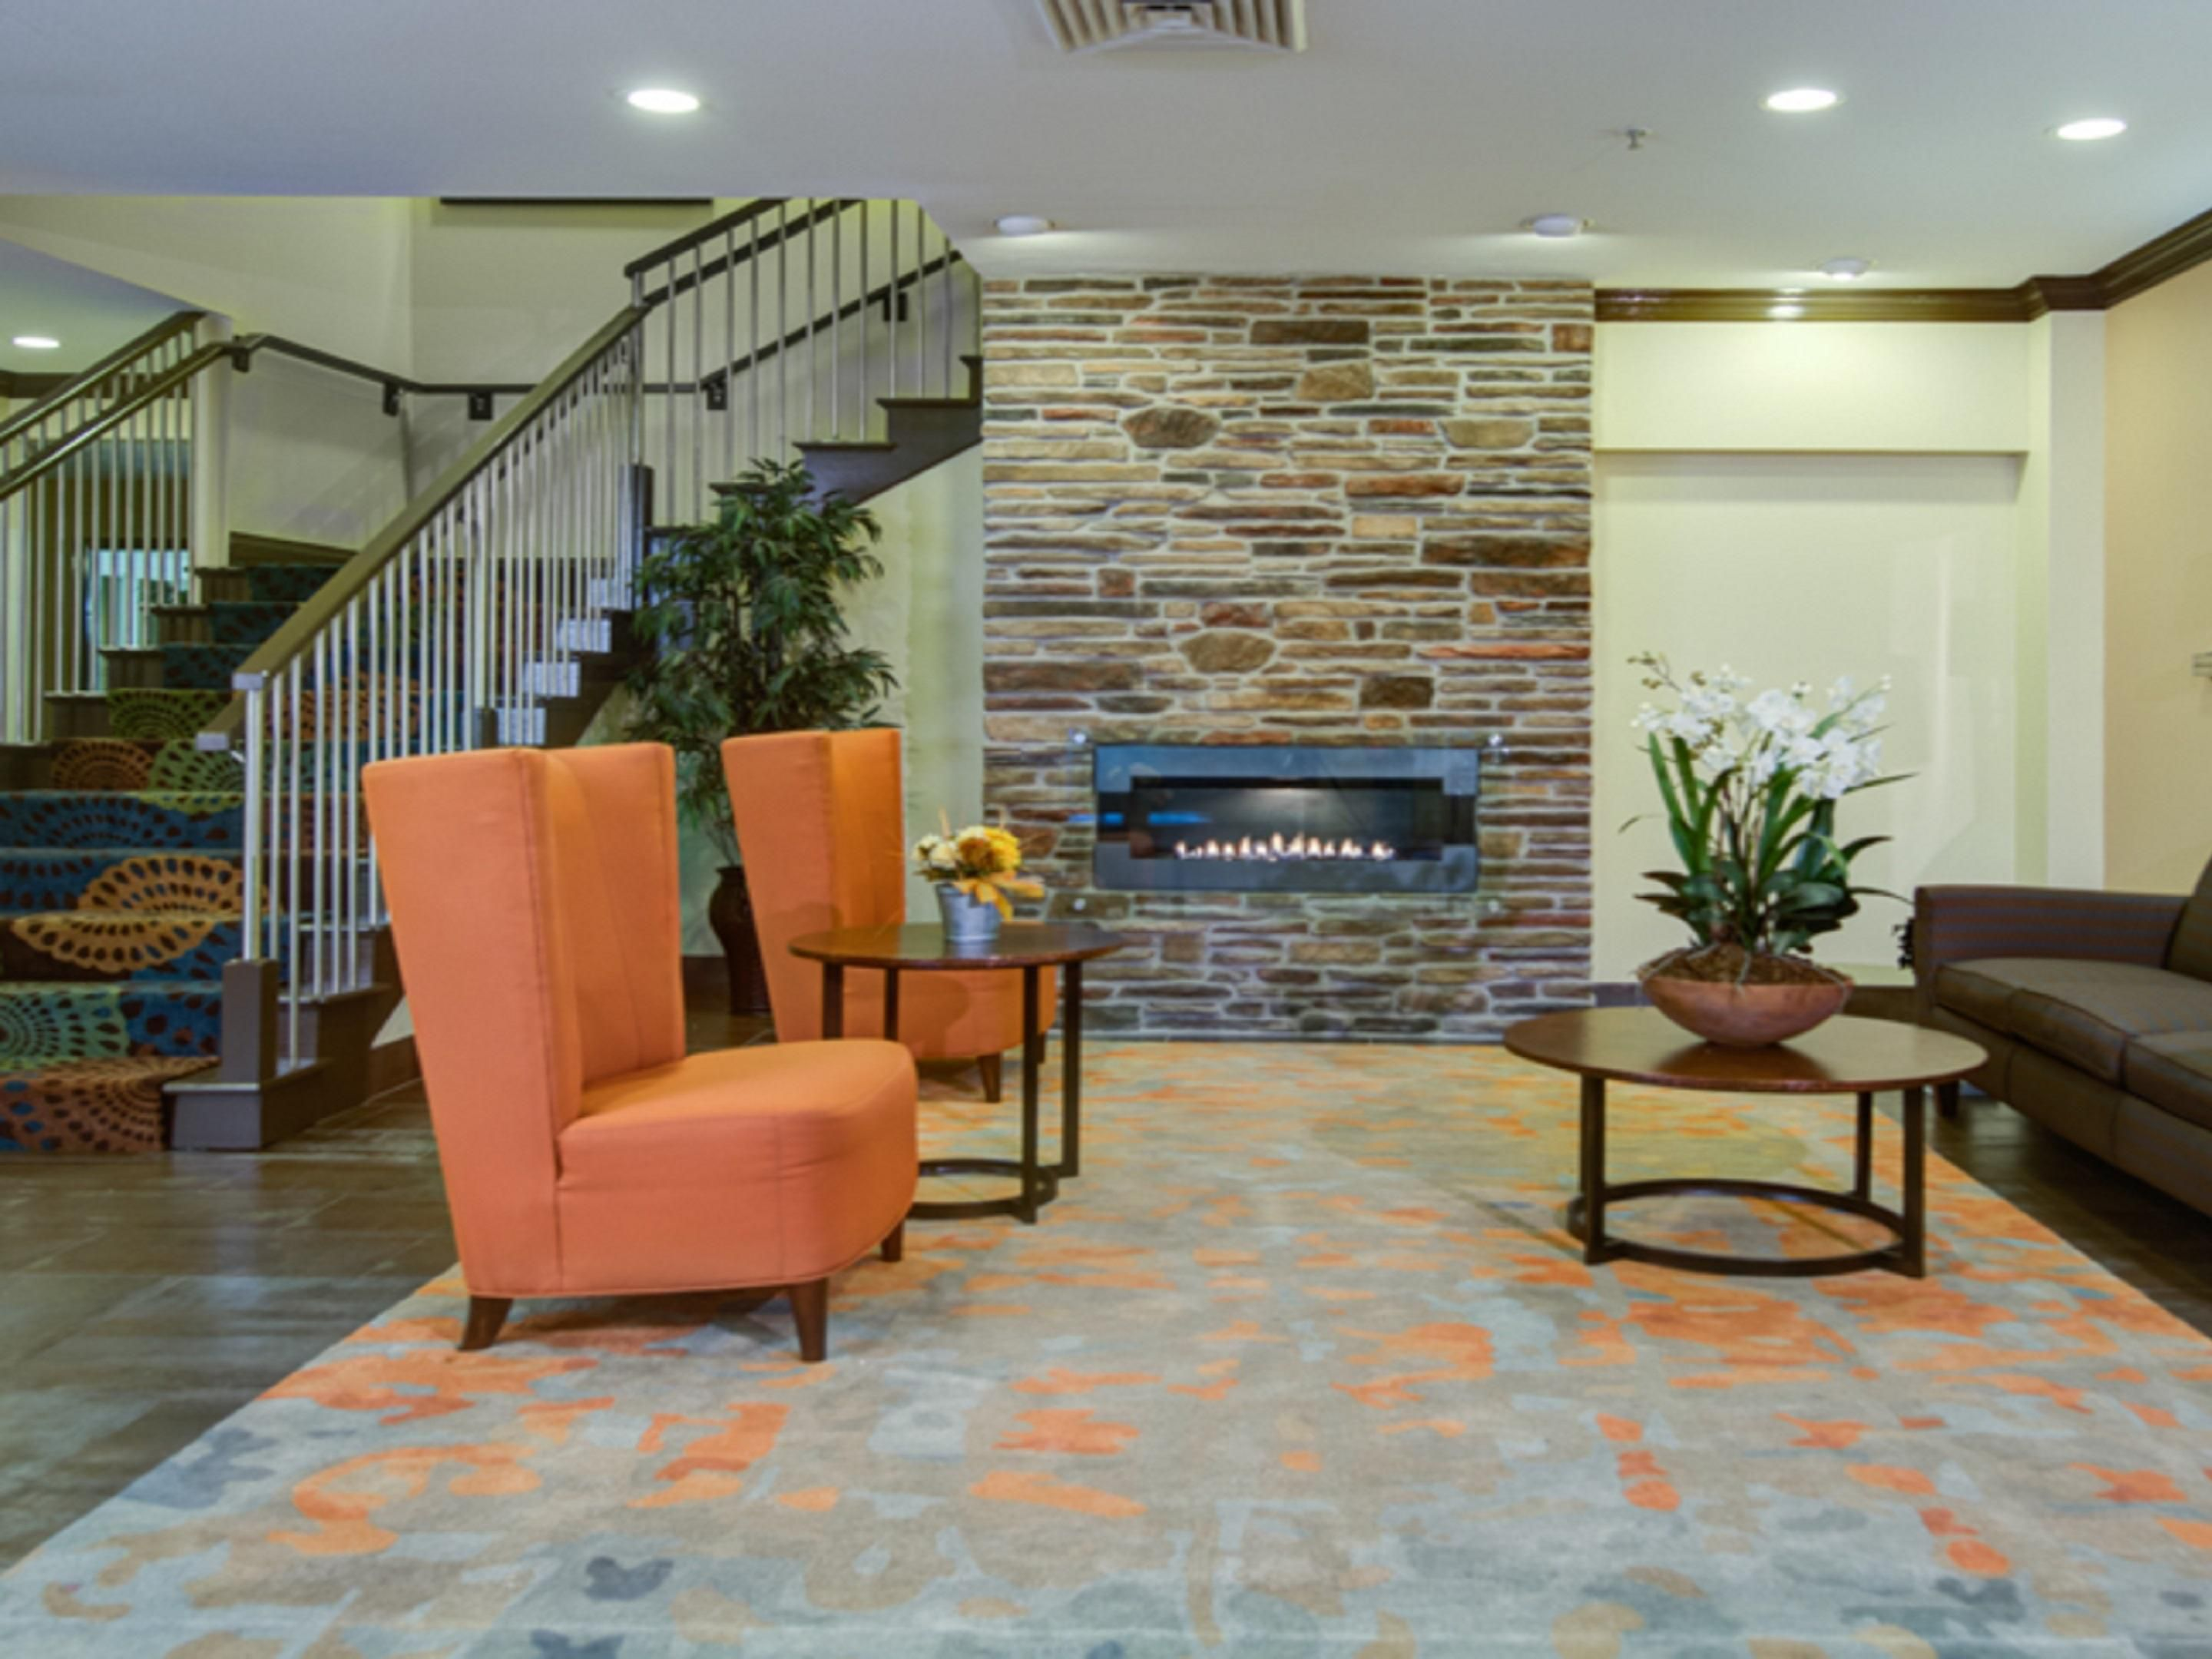 Newly Renovated Lobby near Baxter Healthcare